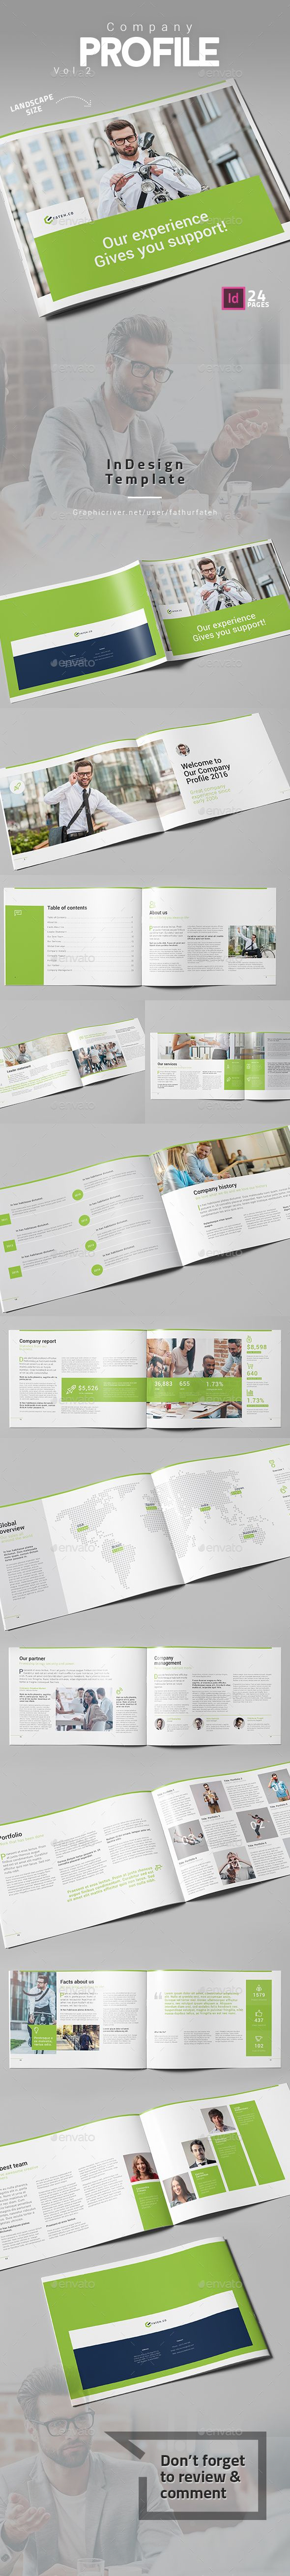 Landscape Company Profile Brochure Template InDesign INDD - 24 Pages